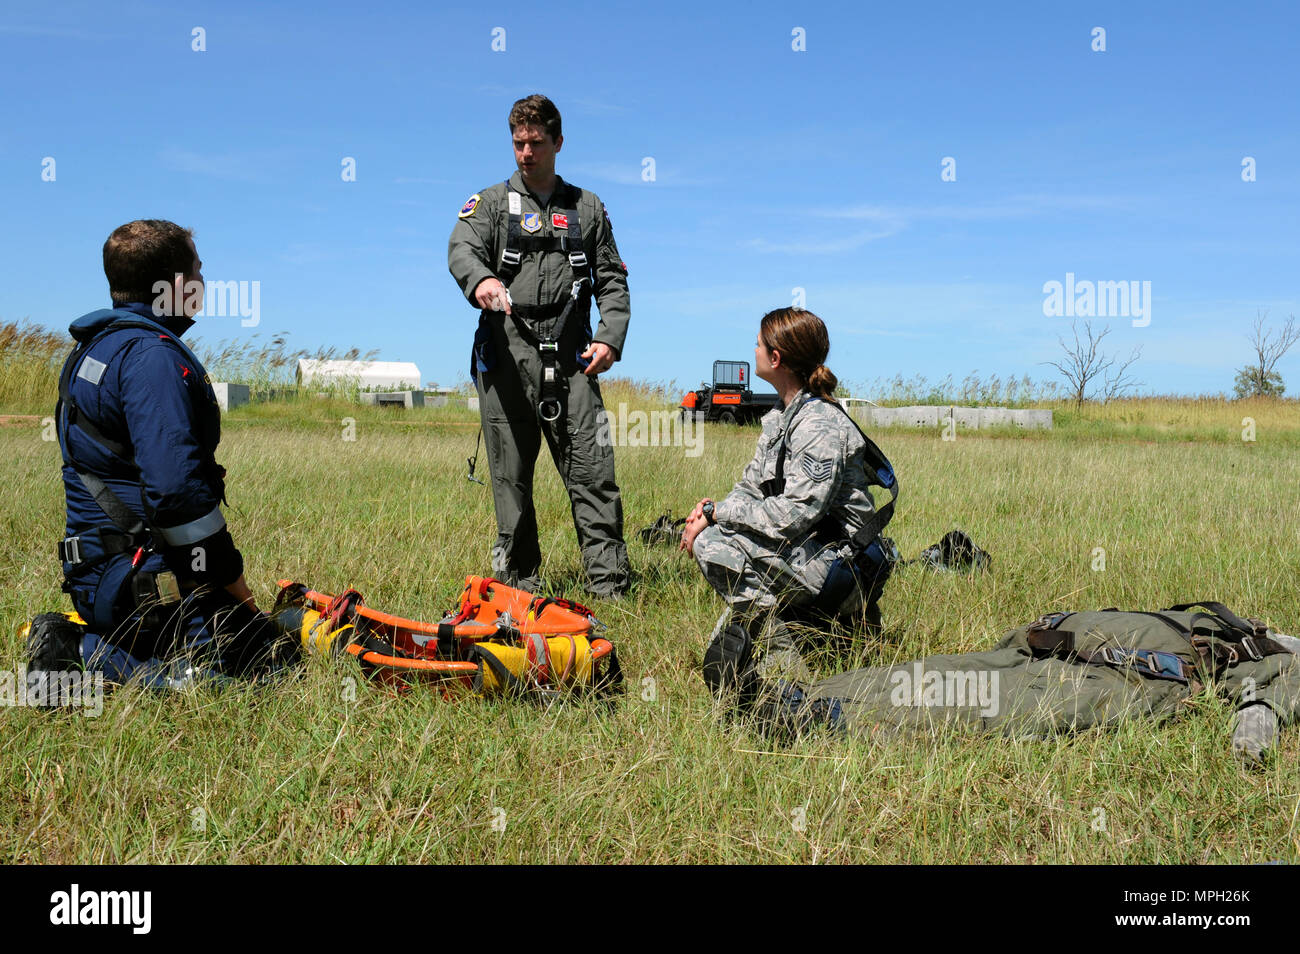 Rescue Crewman Kurt Pride, Royal Australian Air Force Base Tindal helicopter unit member, U.S. Air Force Capt. Paul Ward, 90th Fighter Squadron Flight Doctor, and Tech. Sgt. Layla Dispense, 90th FS Independent Duty Medical Technician, prepare a dummy for transport on a stretcher during helicopter rescue training at RAAF Base Tindal, Feb. 28, 2017. Ward and Dispense are deployed to Australia as part of the Enhanced Air Cooperation, a joint training and exercise initiative under the Force Posture Agreement between the U.S. and Australian governments. (U.S. Air Force photo by Staff Sgt. Alexander - Stock Image